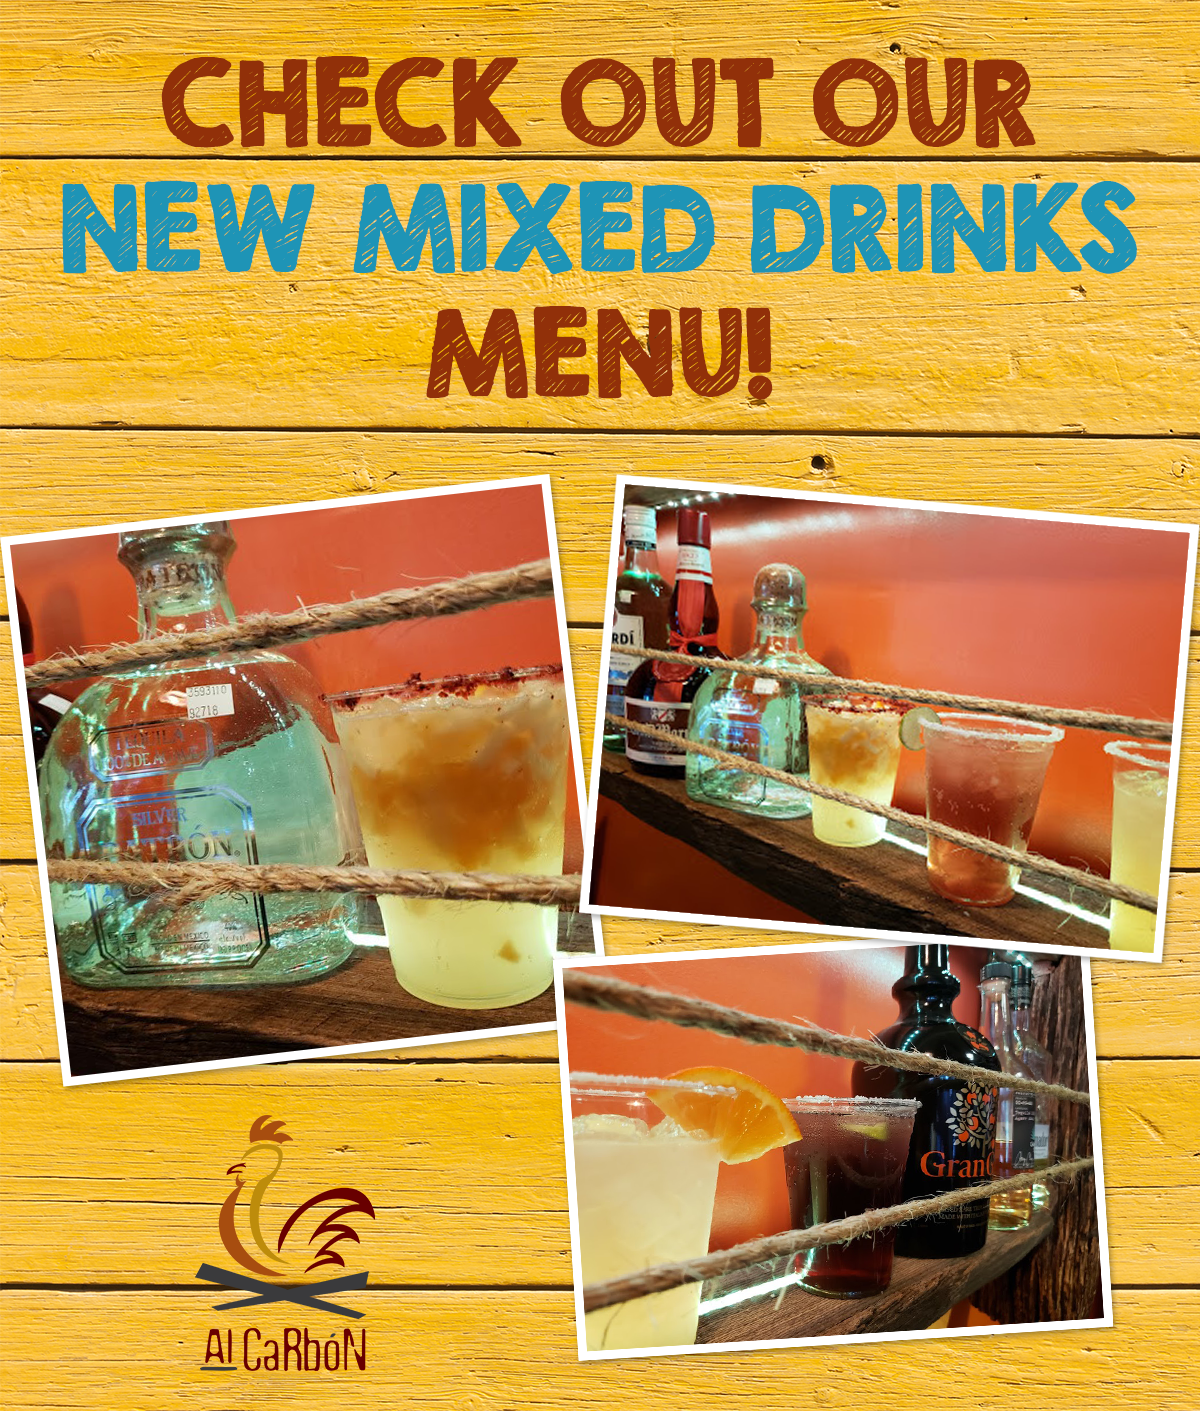 Check out our new drinks menu!